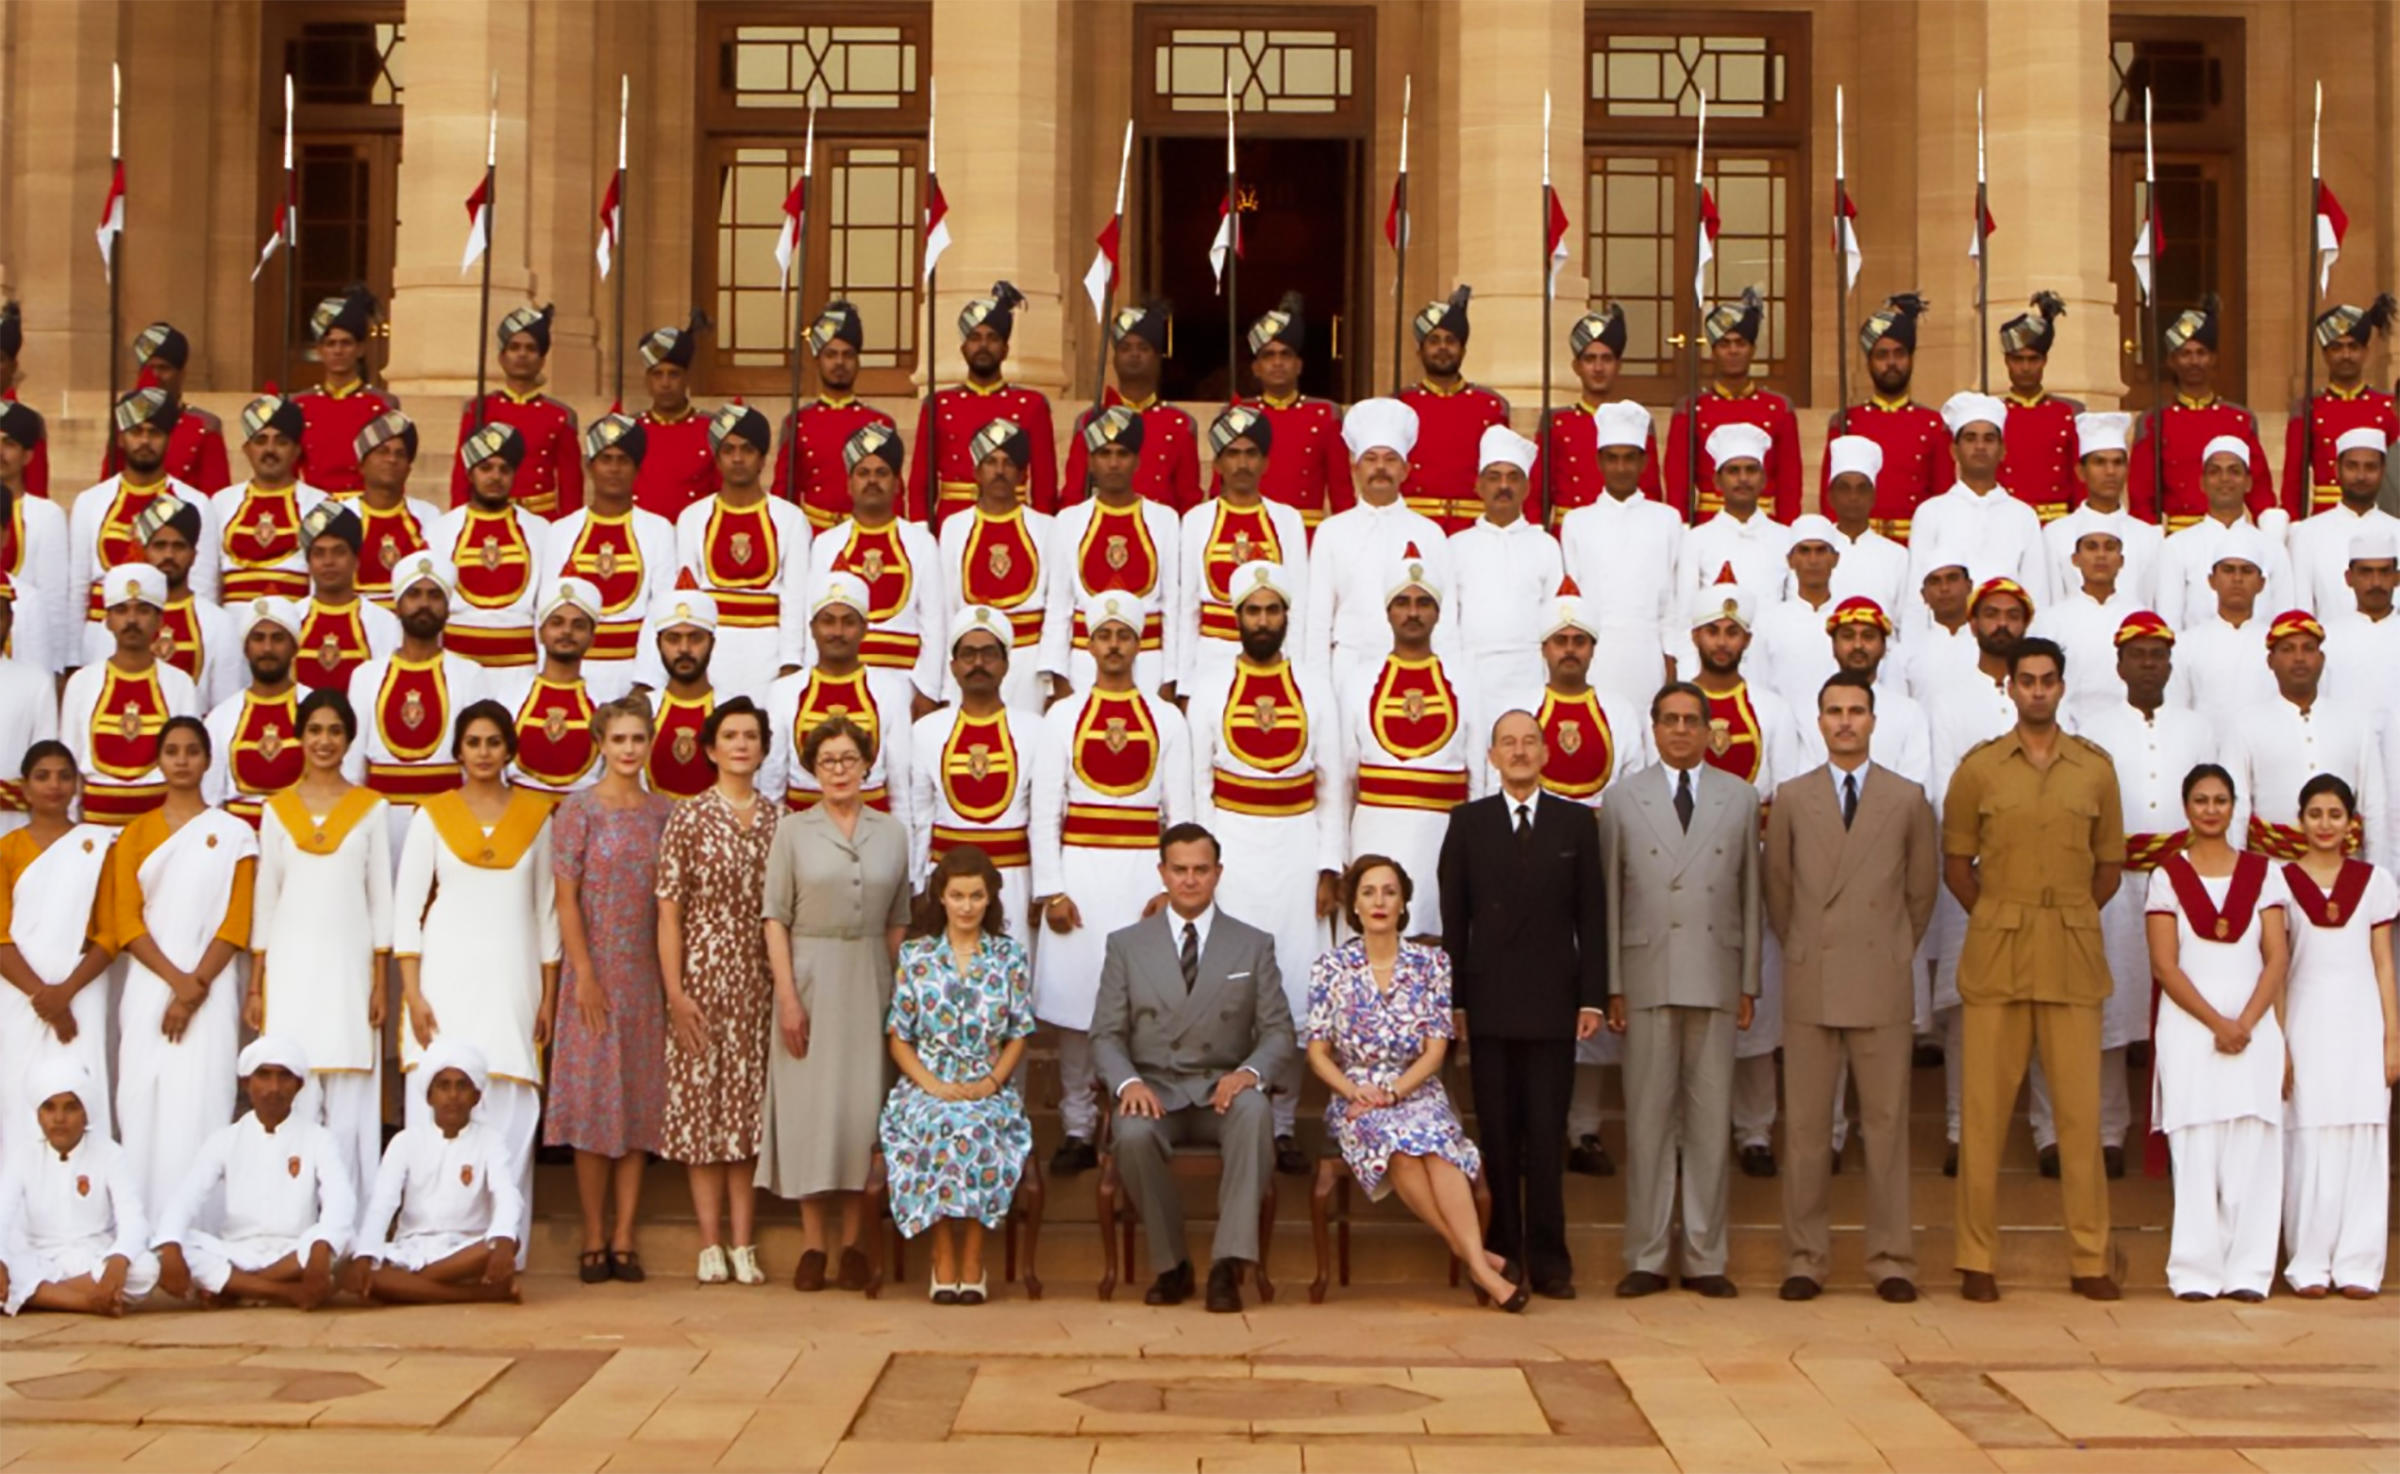 A still from the 2017 film Viceroy's House